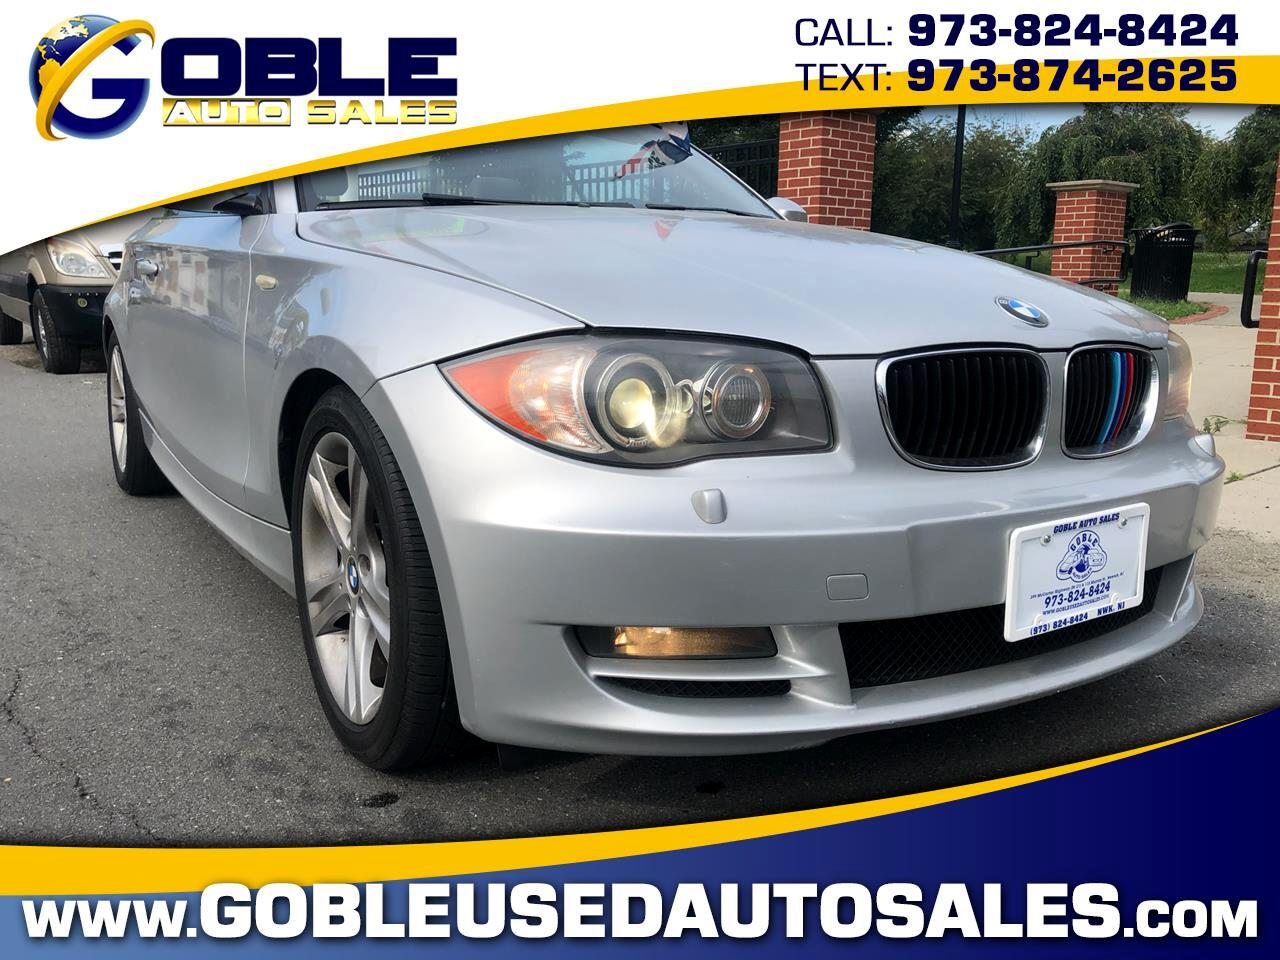 2008 BMW 1 Series 2dr Conv 128i